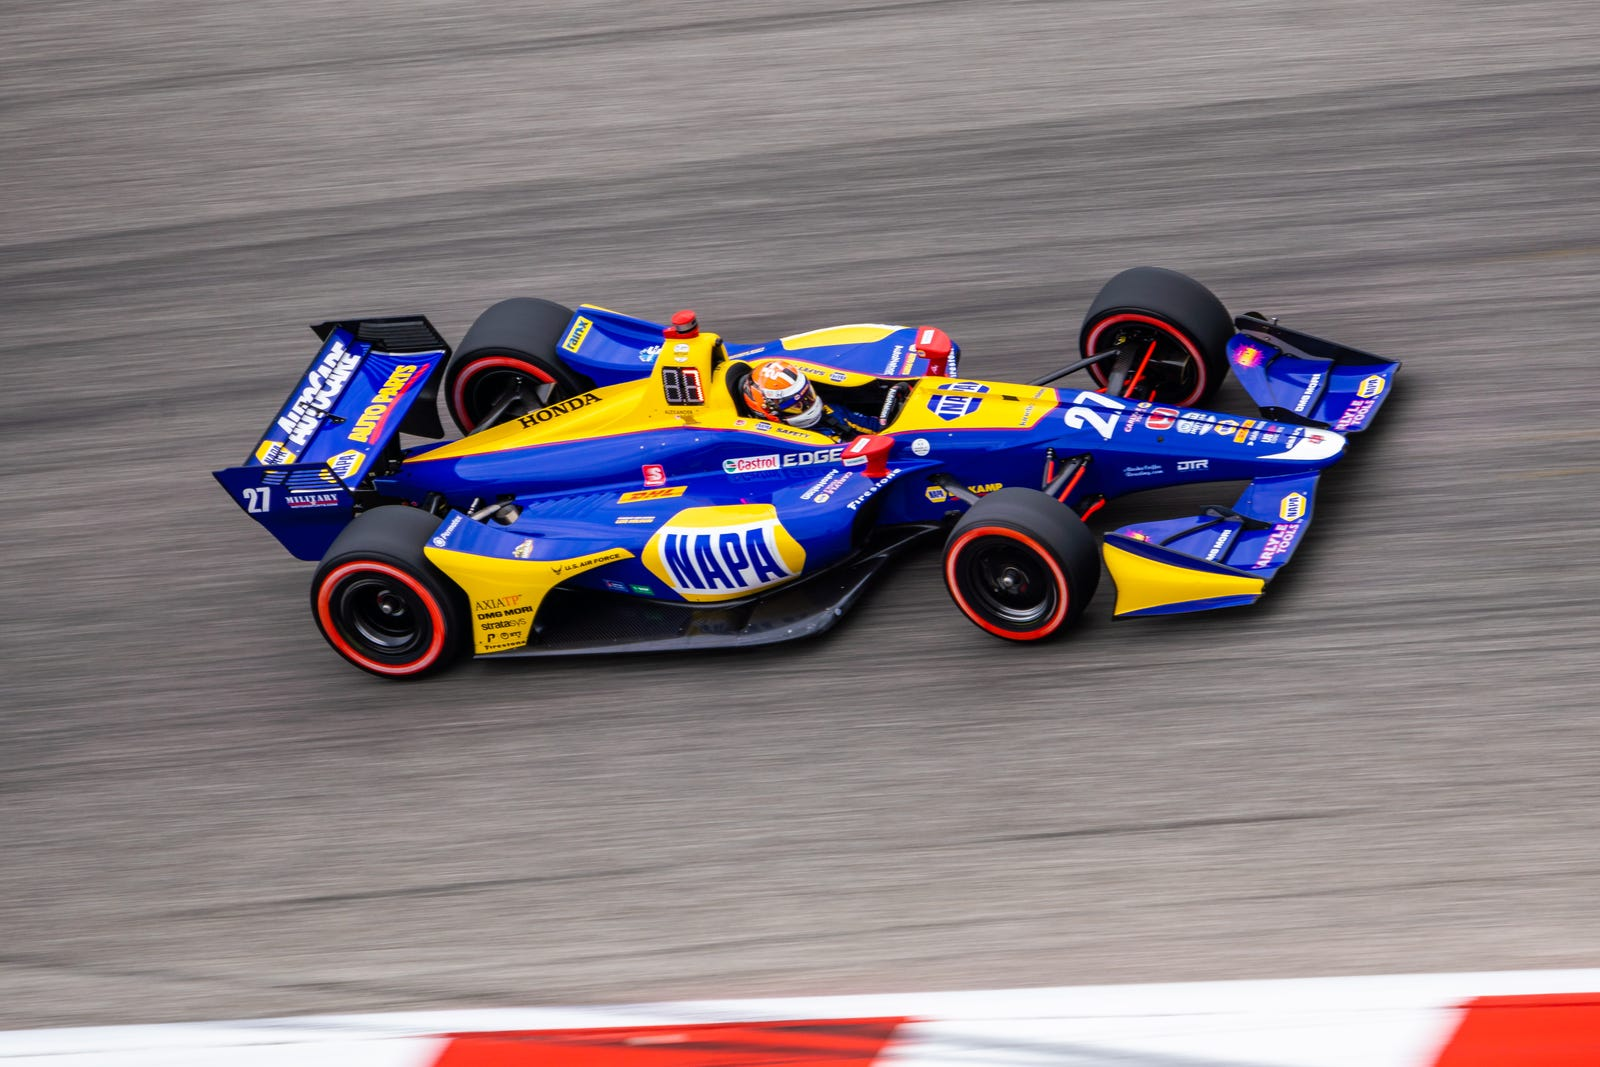 Alexander Rossi (27) came in second during qualifying yet still had a respectable time with only 15/100th of a second behind Power.